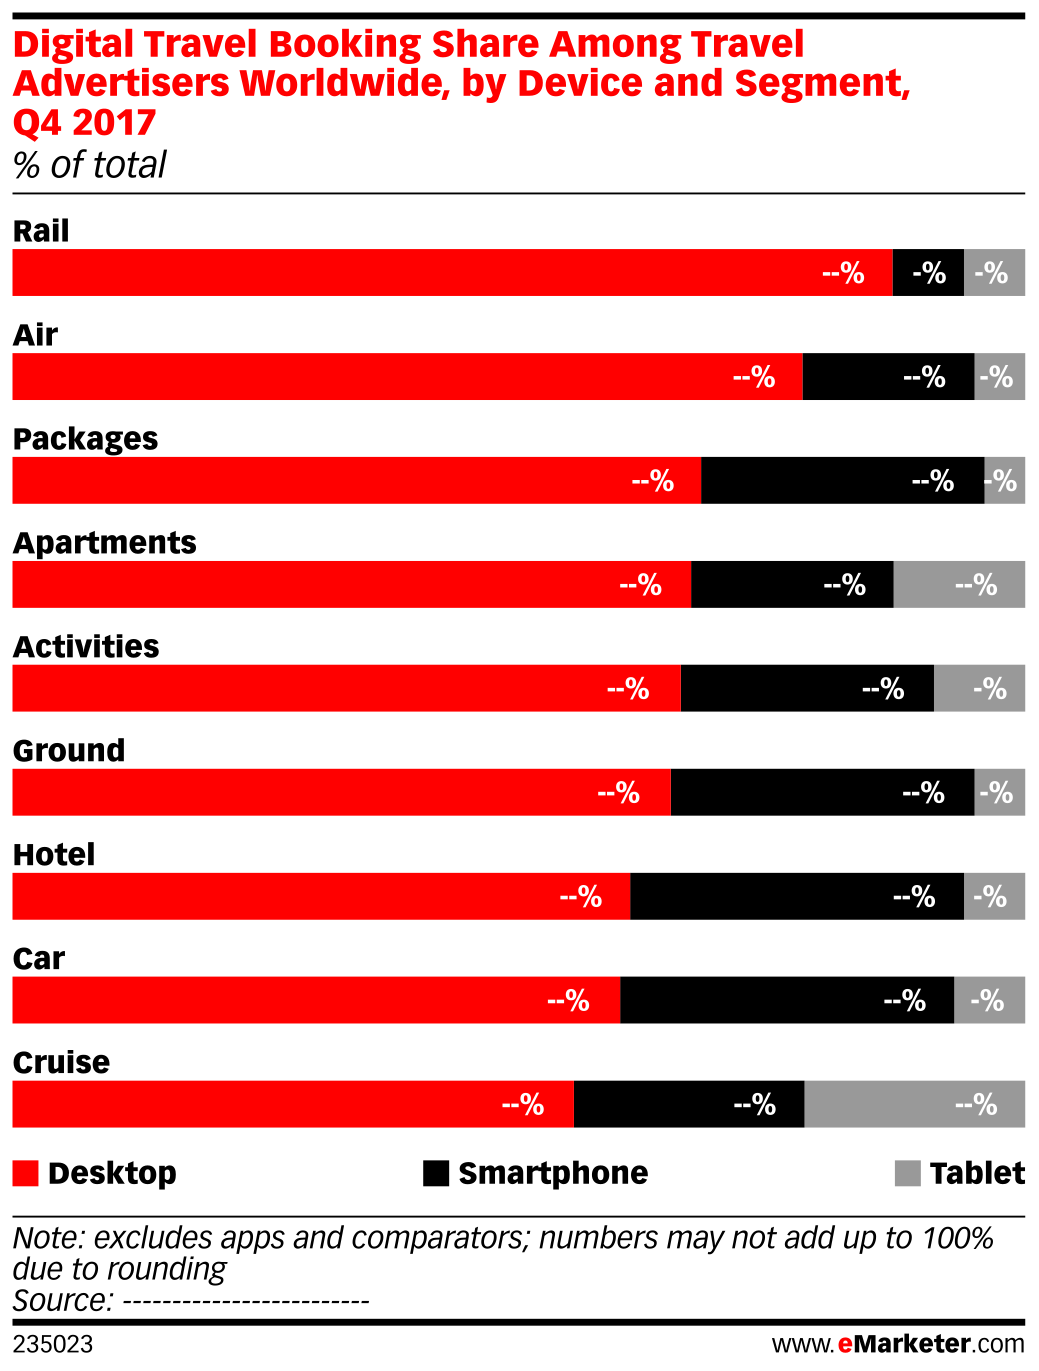 Digital Travel Booking Share Among Travel Advertisers Worldwide, by Device and Segment, Q4 2017 (% of total)